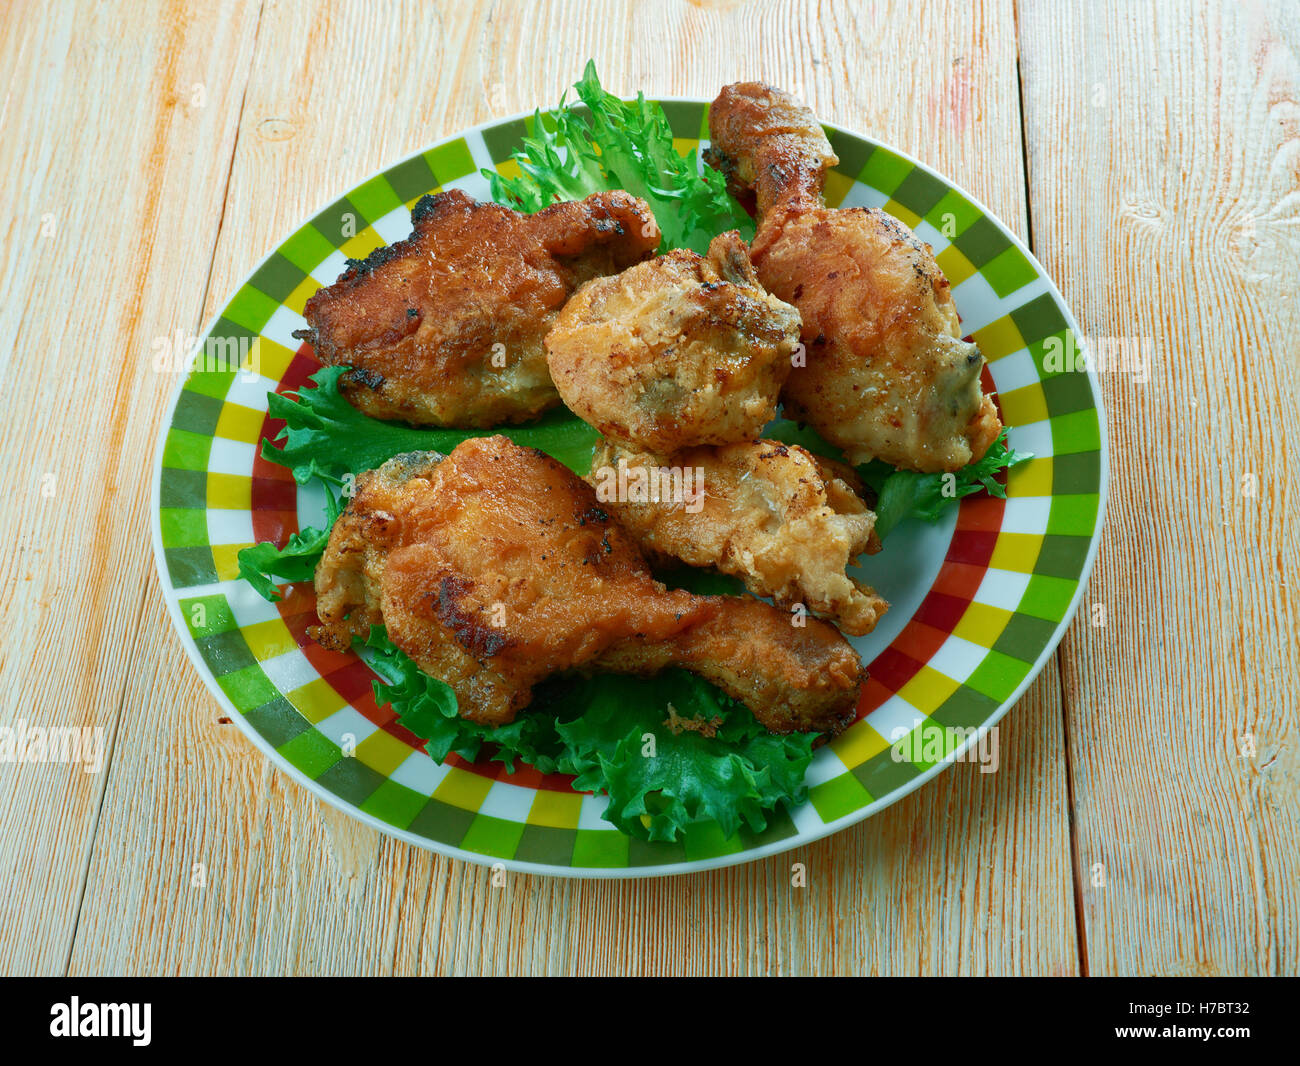 Southern Fried Chicken.a British-based fast food chain.Cuisine of the Southern United States - Stock Image